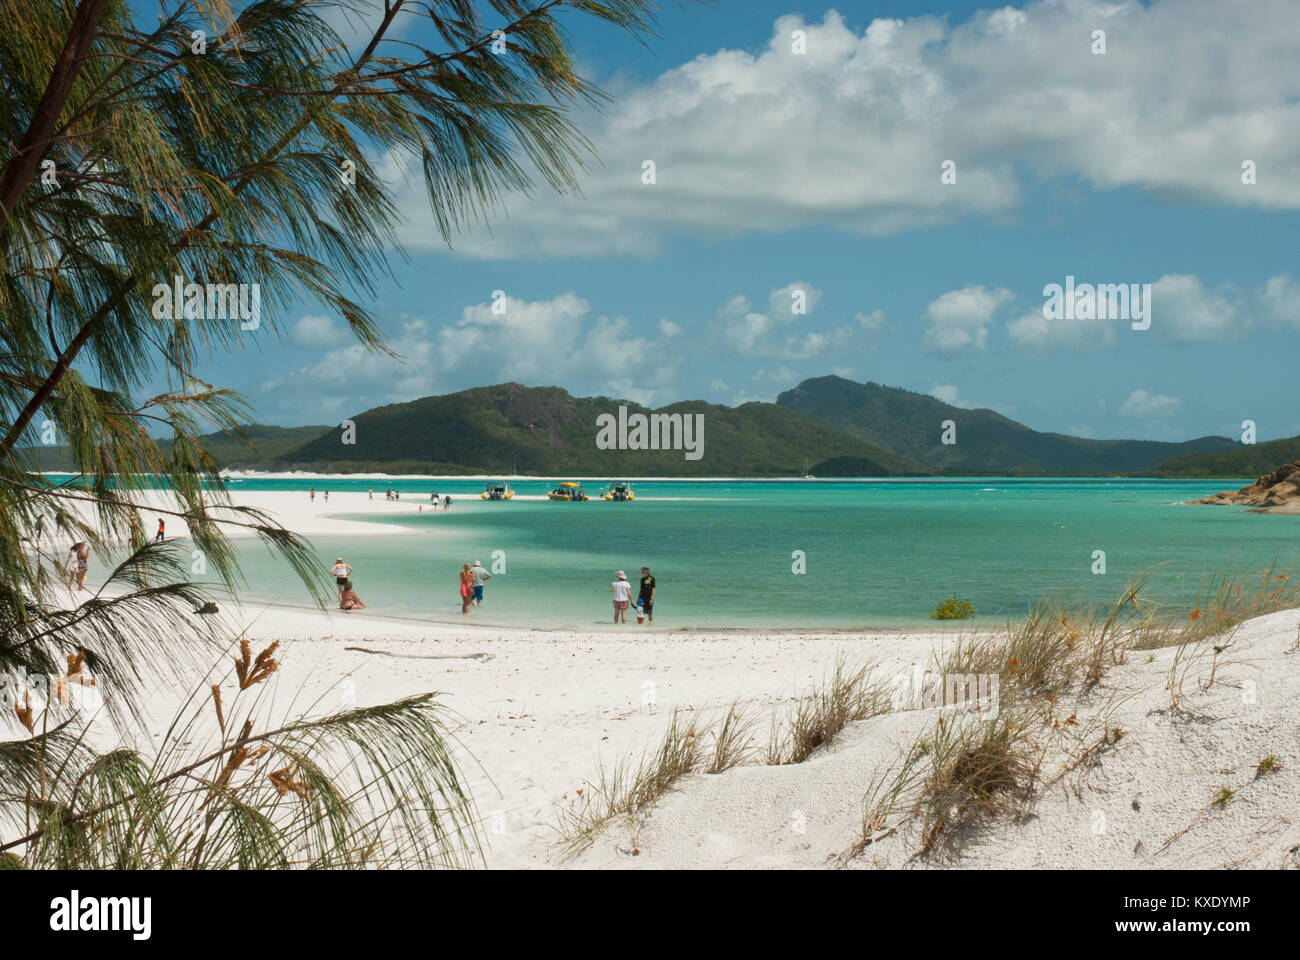 Rain Beach Emerald Coast Blue Sea Australia Ocean Summer: White Coral Beach Stock Photos & White Coral Beach Stock